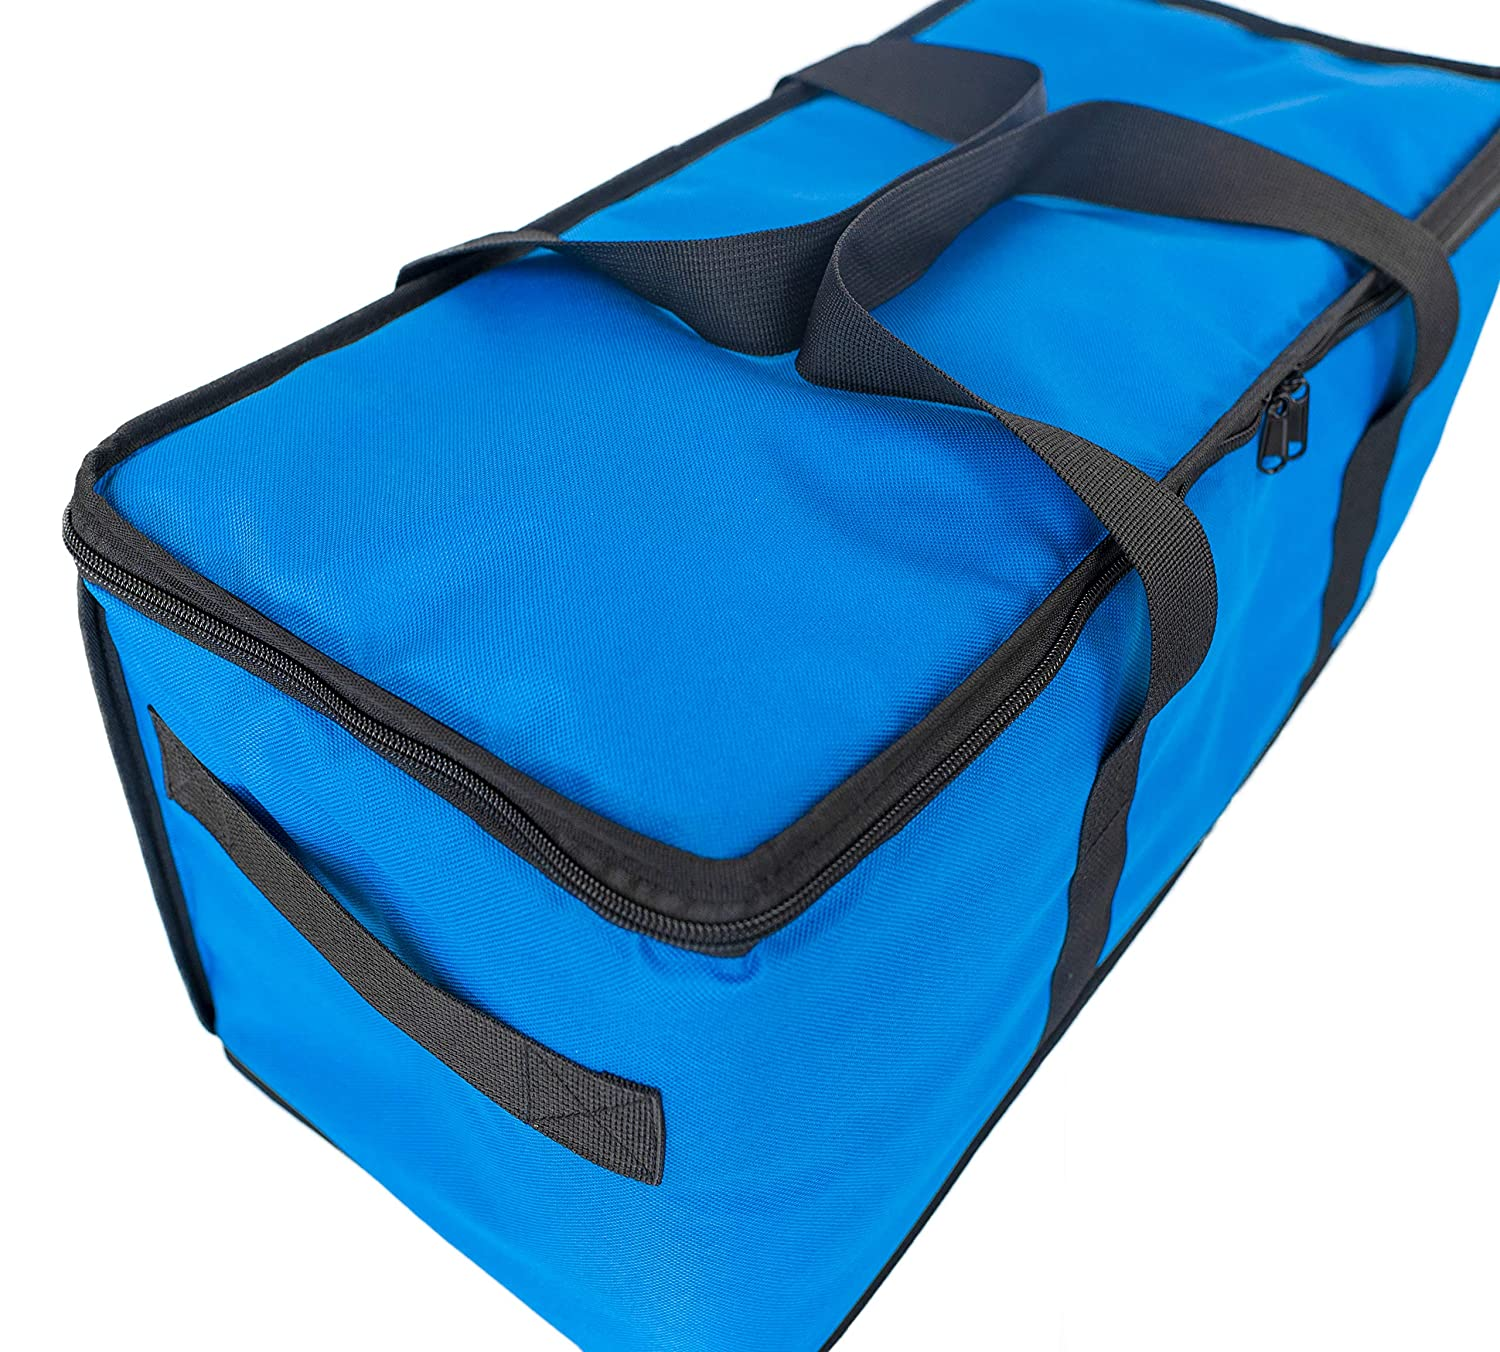 EMMandSOPHIE Insulated food delivery bag - BLUE Delivery Bags for Hot Food - Insulated, Padded and Lined to Keep Food Hotter -M Sturdy Commercial Quality Food Delivery Bag is 22